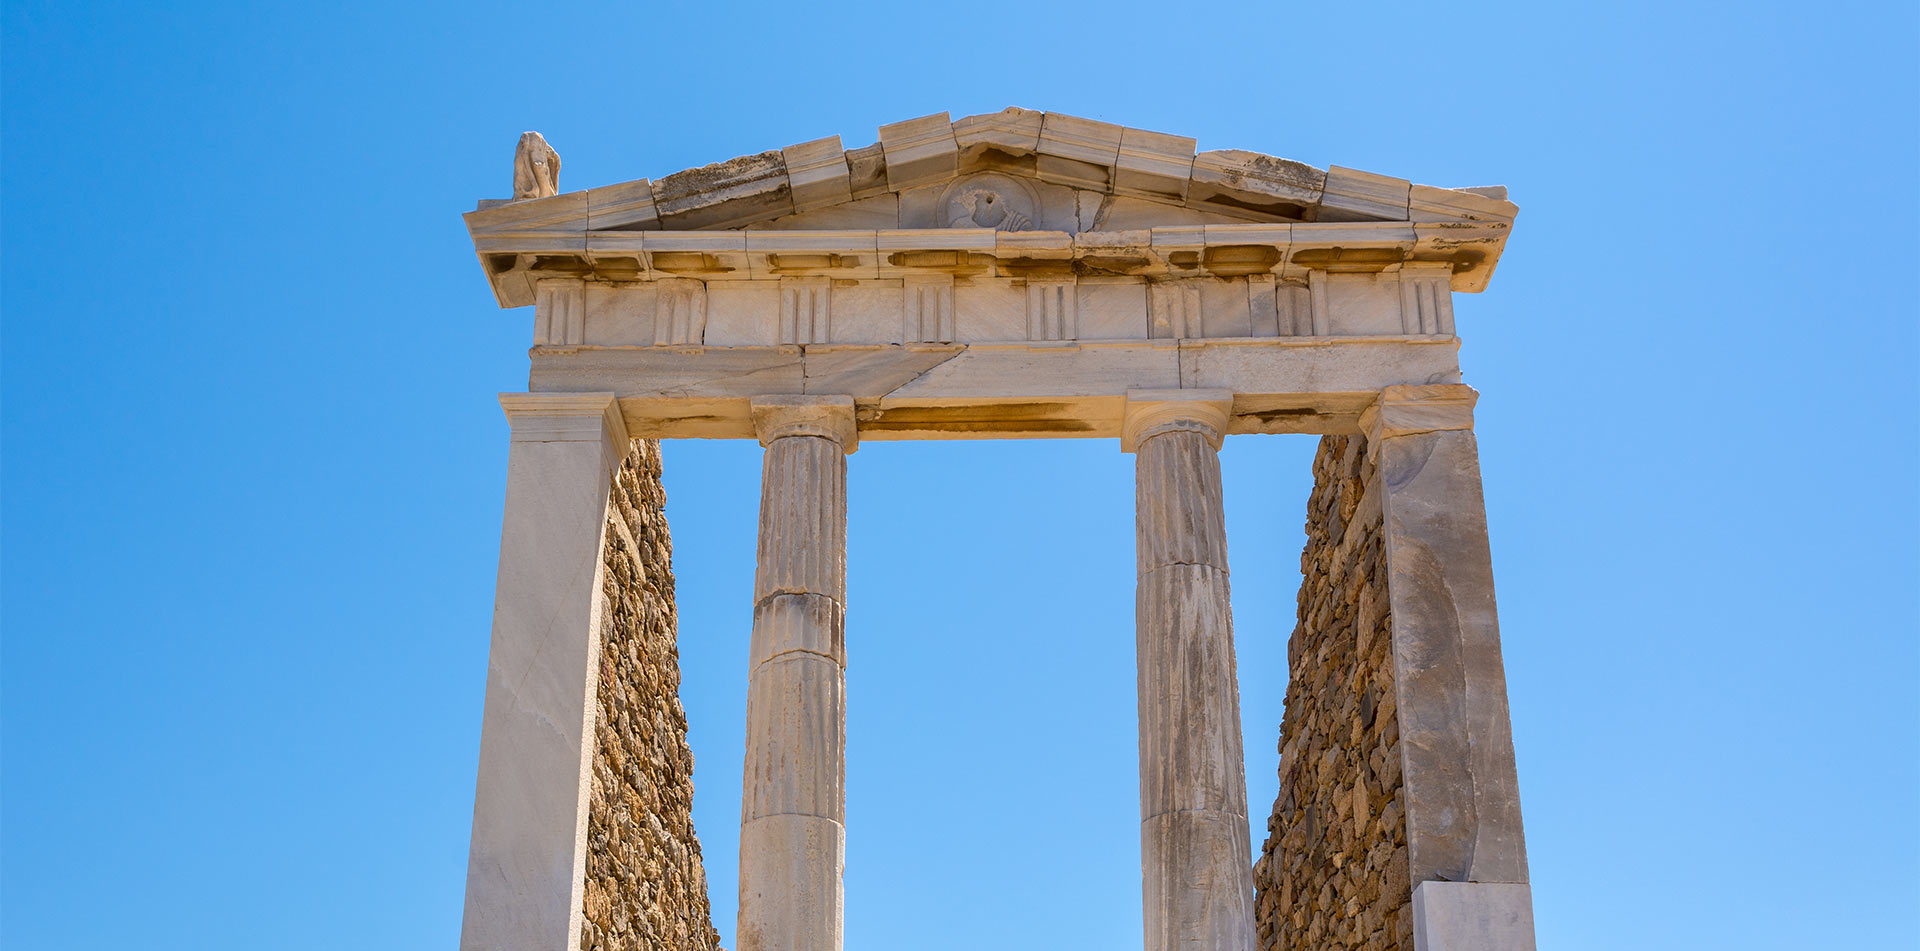 Europe Greece Delos Island The Temple of Isis archaeological site roman columns - luxury vacation destinations